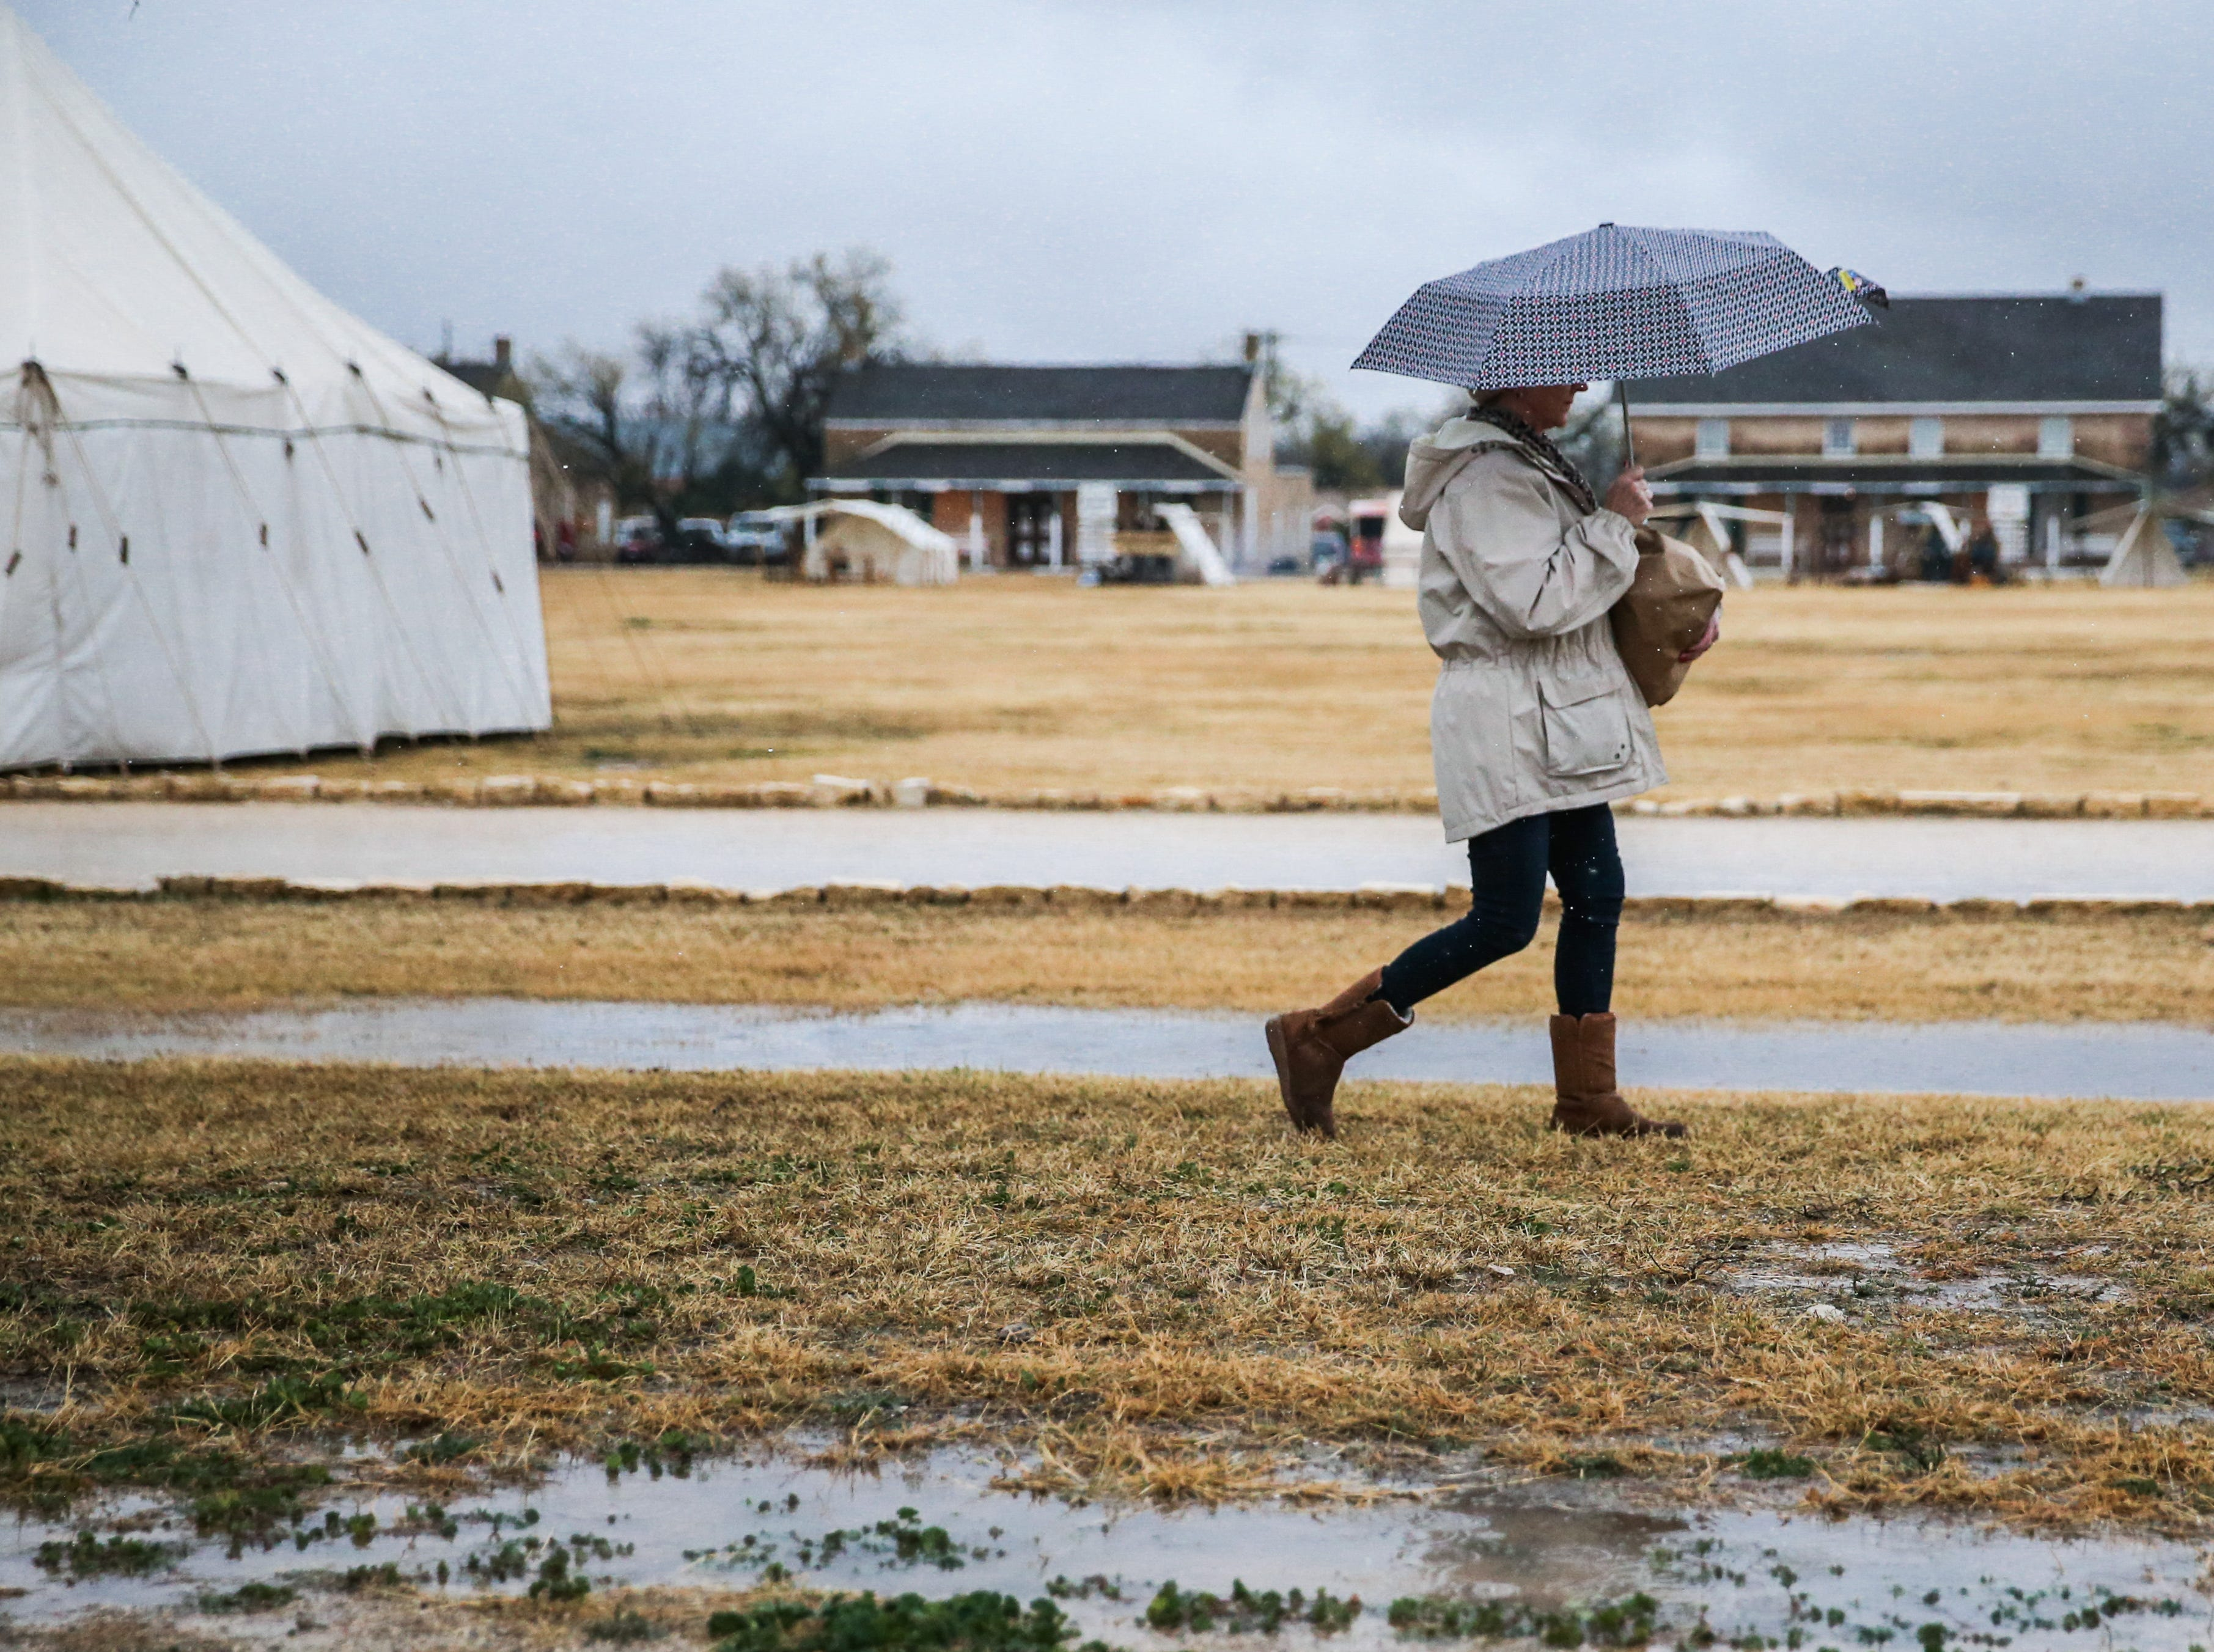 A visitor walks in the wet grass between buildings Friday, Dec. 7, 2018, during Christmas at Old Fort Concho.